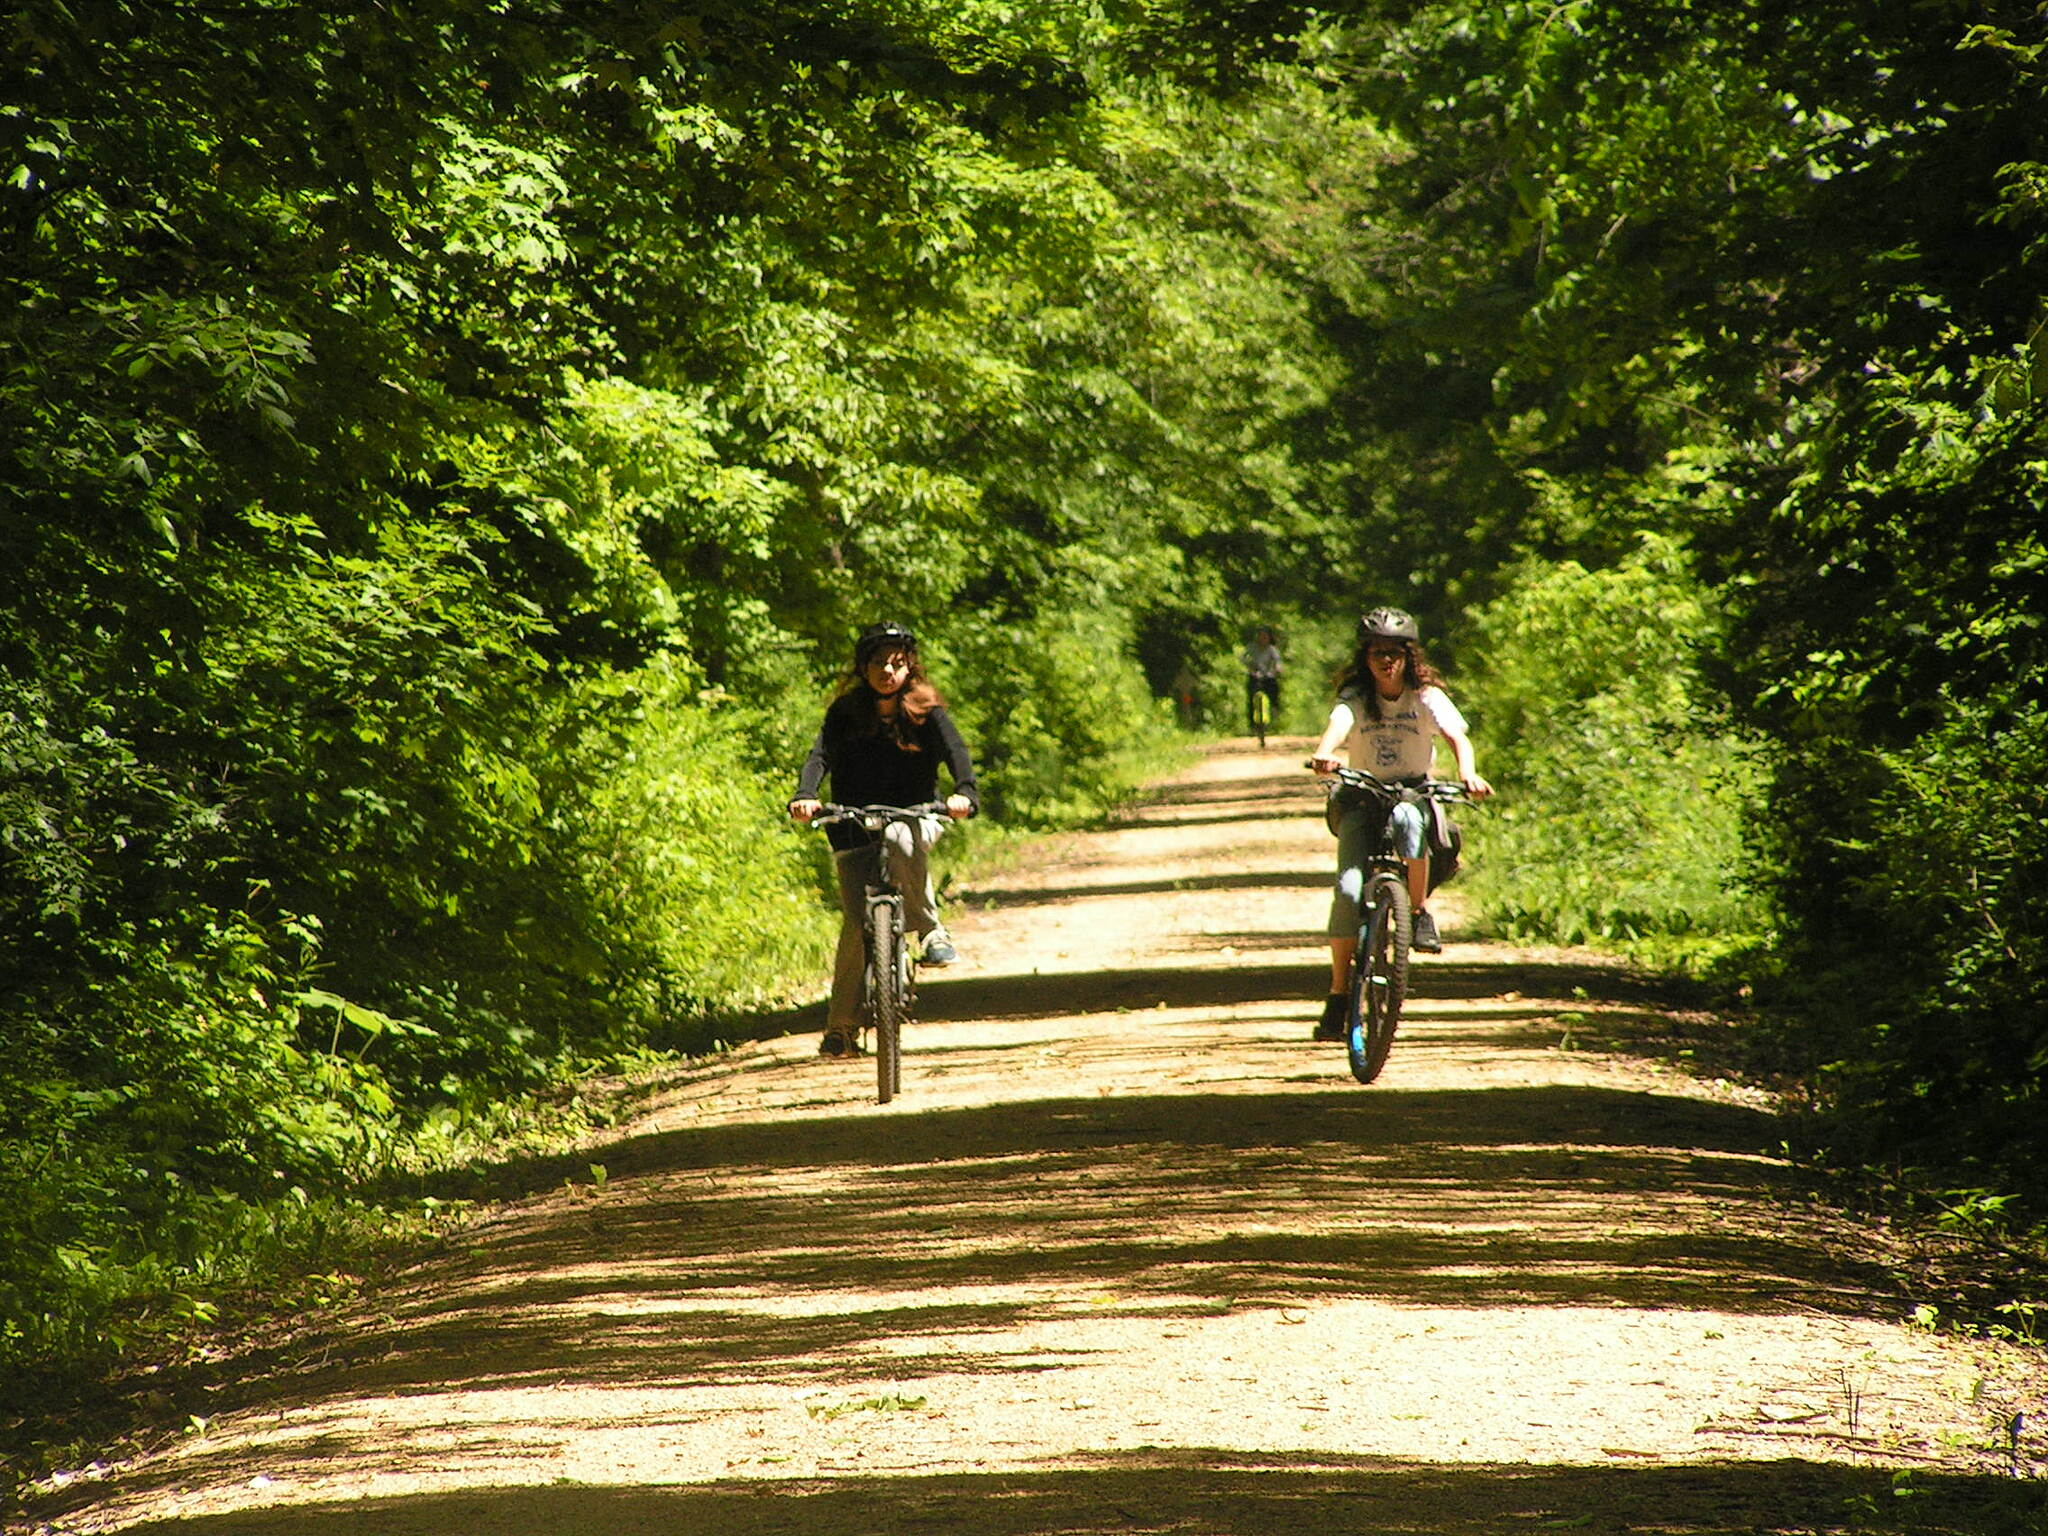 Gandy Dancer Trail - Southern Section Just a leisure type of day. I strongly suggest this trail for the family!